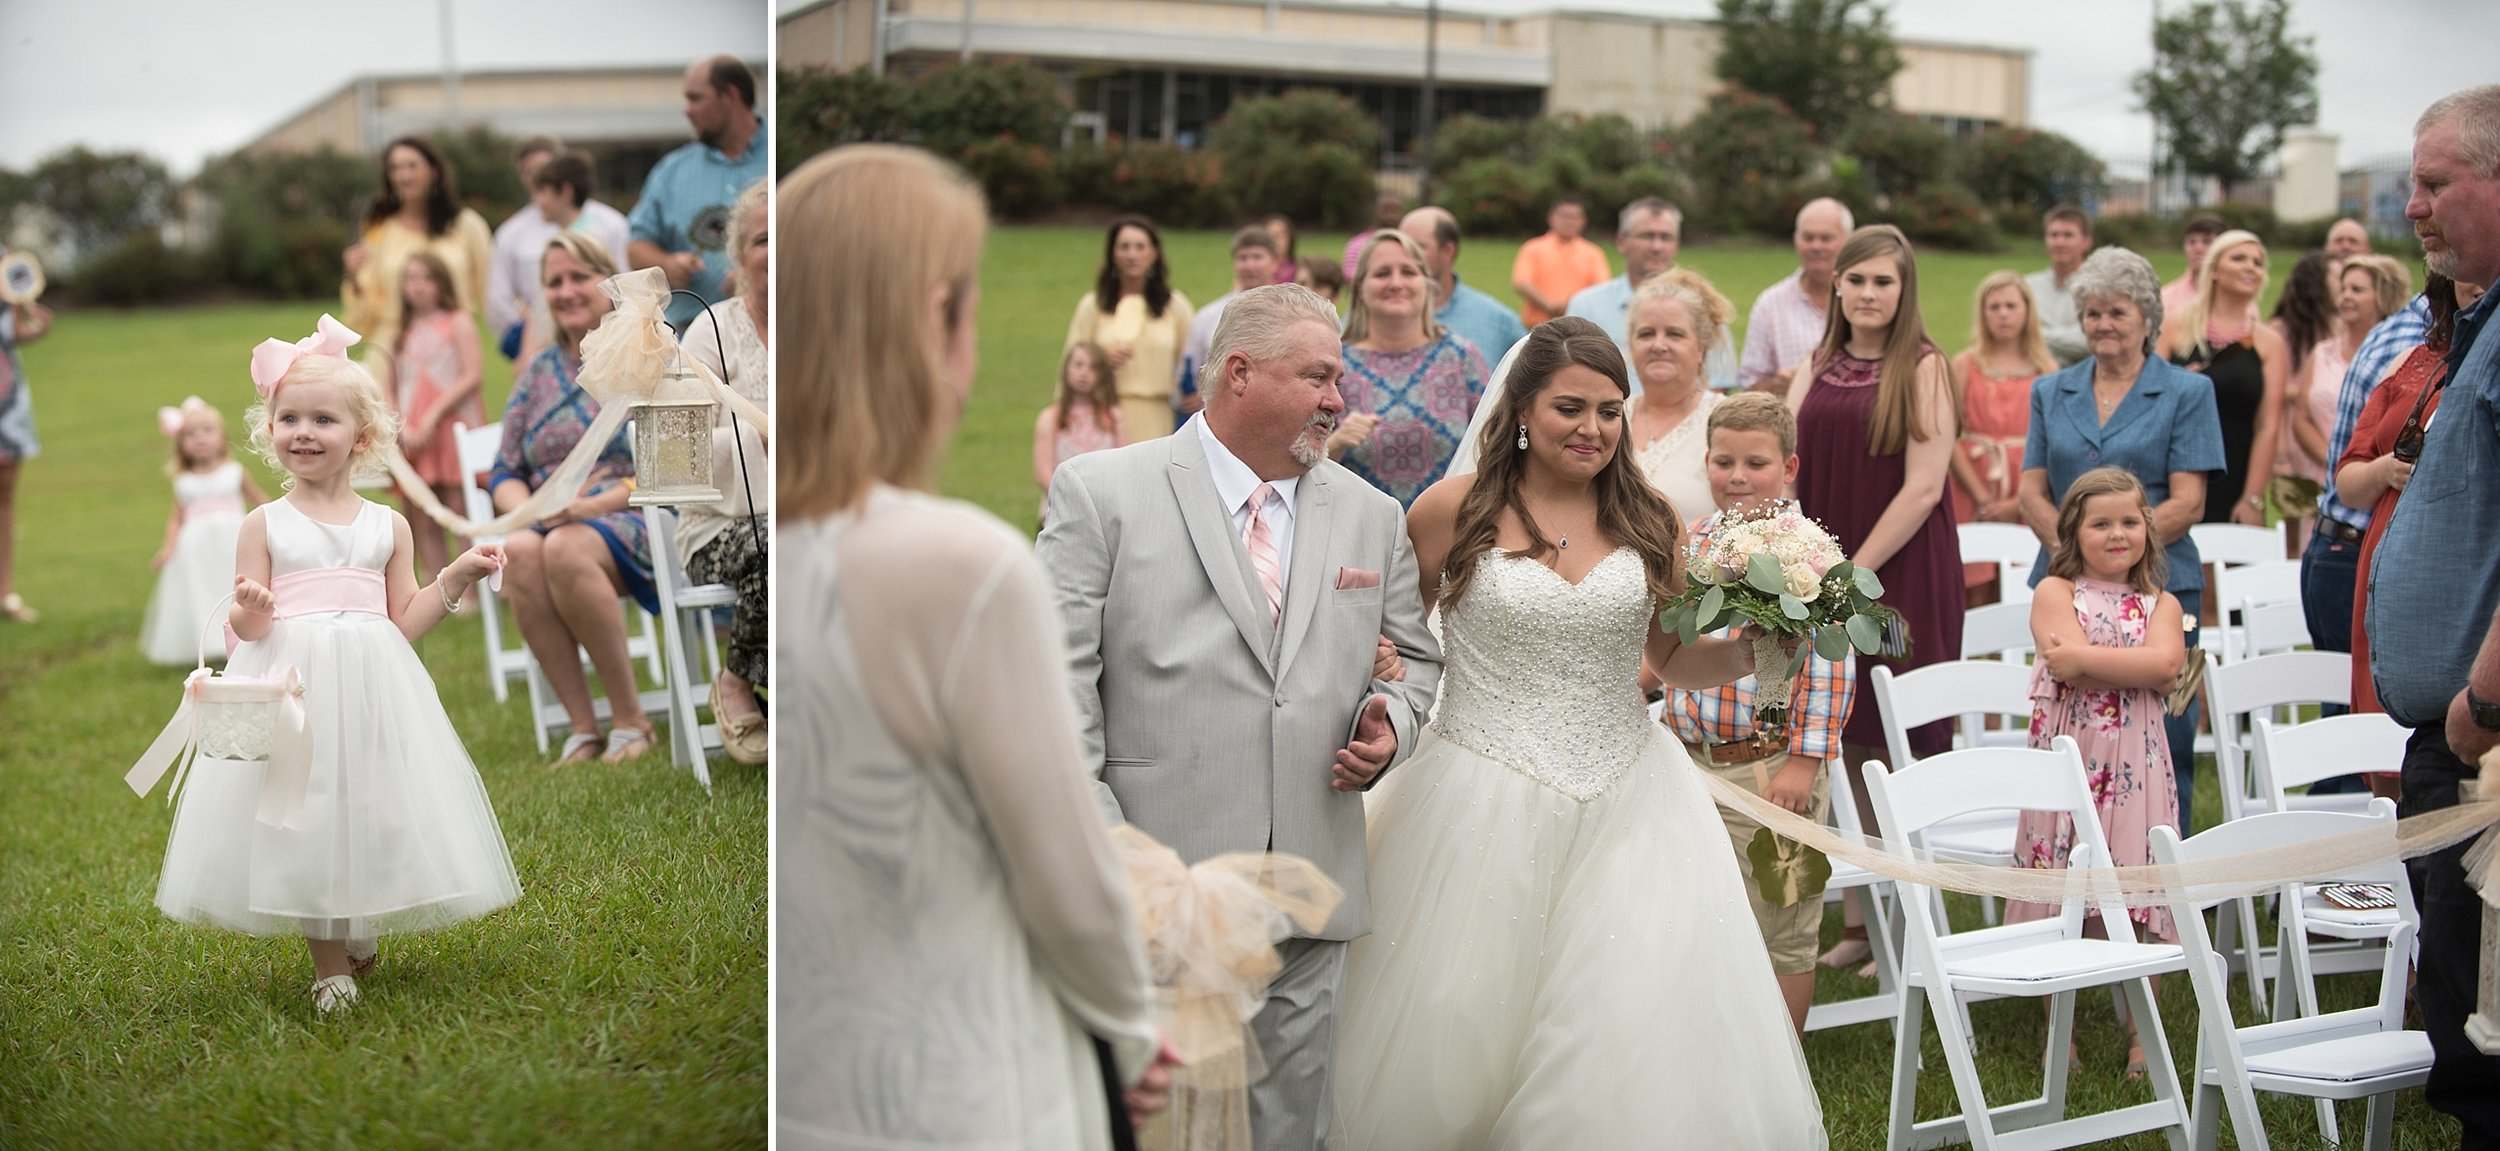 Father of the Bride escorts his daughter down the aisle